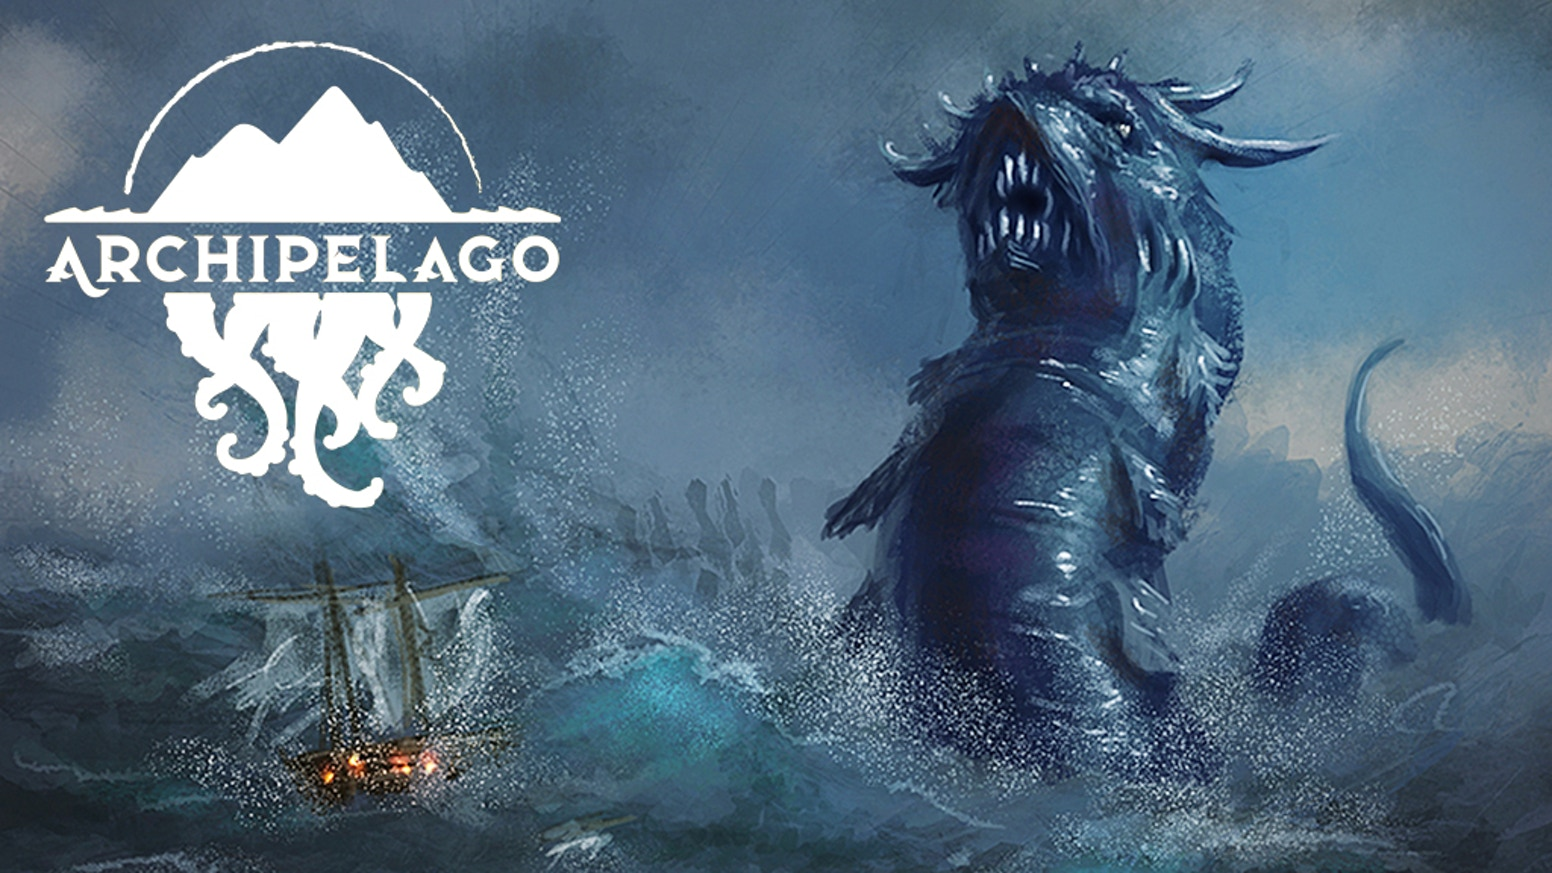 ARCHIPELAGO is a collaborative, competitive, serial fiction project full of pirates, monsters and world-changing magic - check it out!